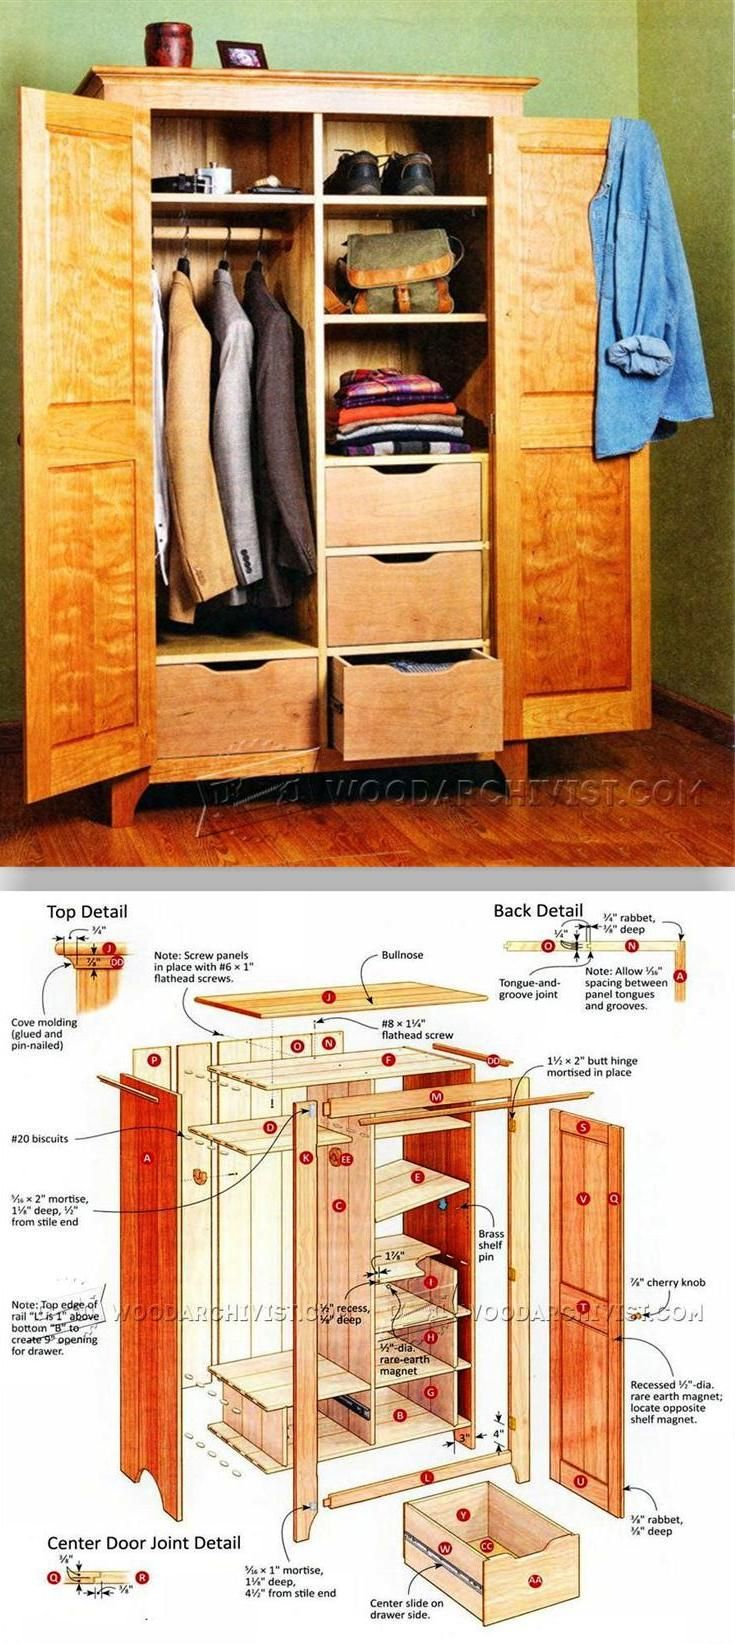 Bedroom wardrobe plans furniture plans and projects